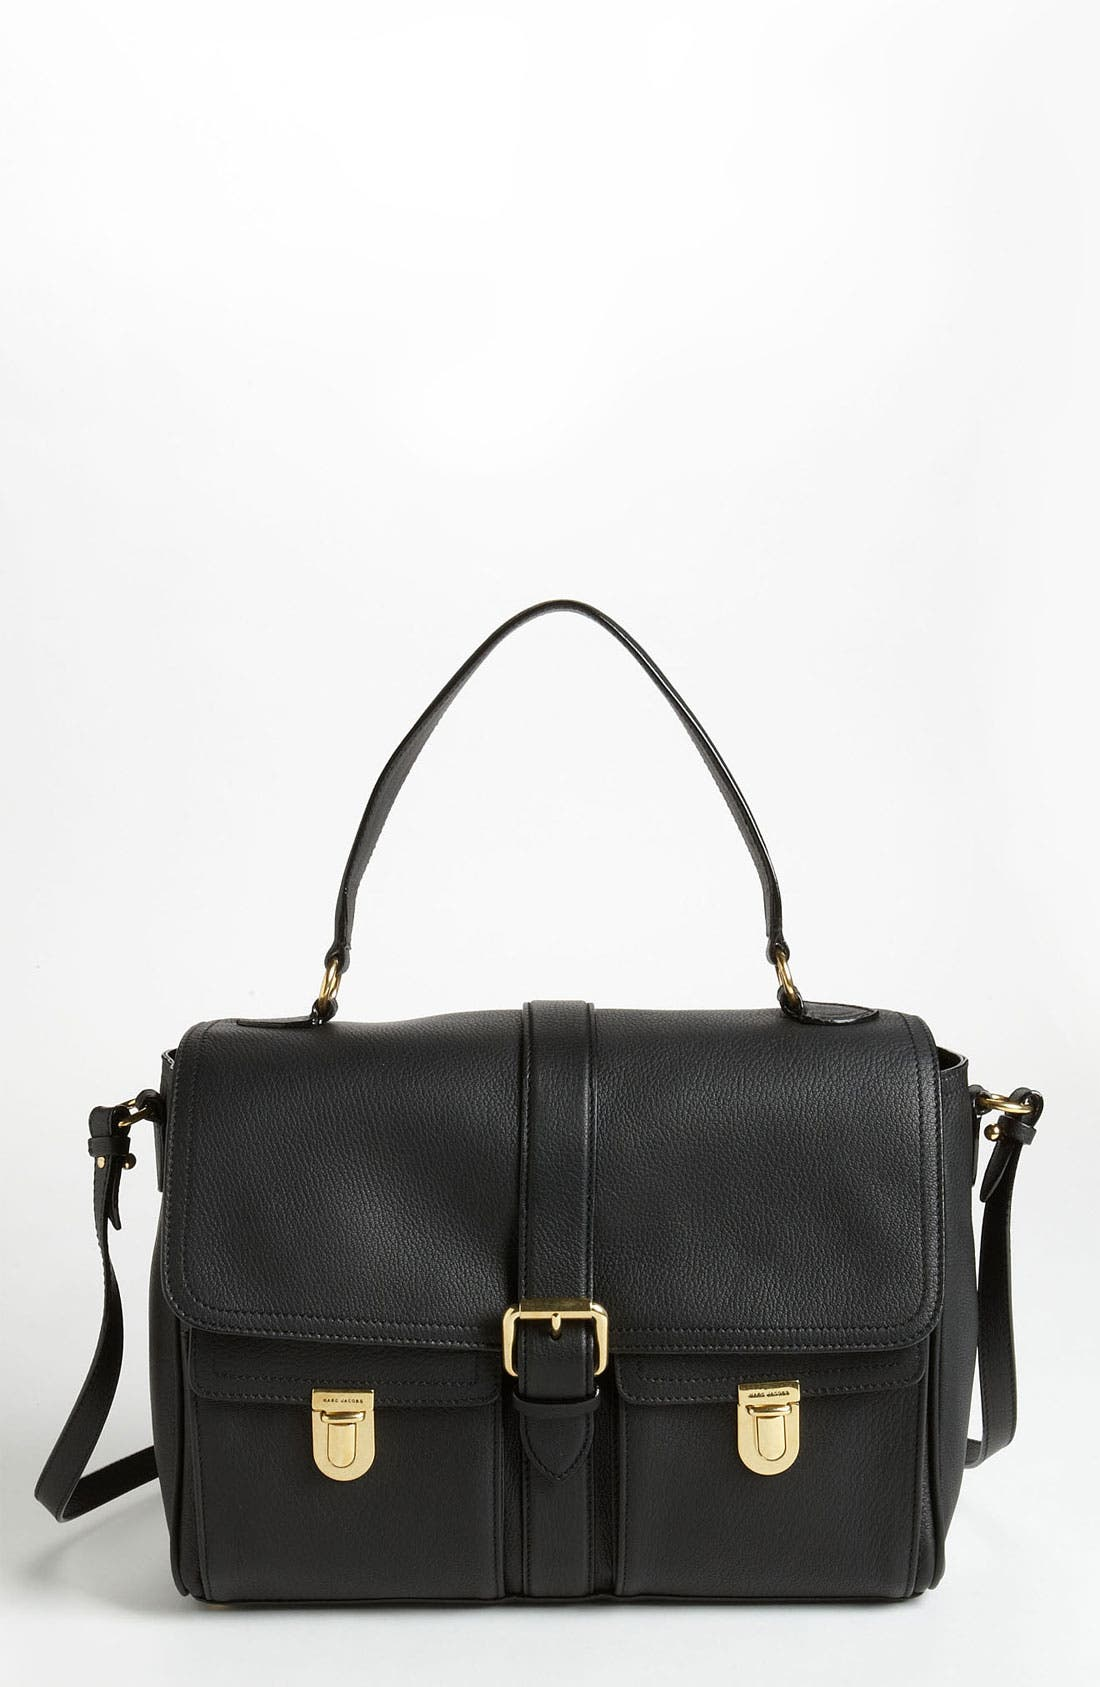 Alternate Image 1 Selected - MARC JACOBS 'Lola' Leather Satchel